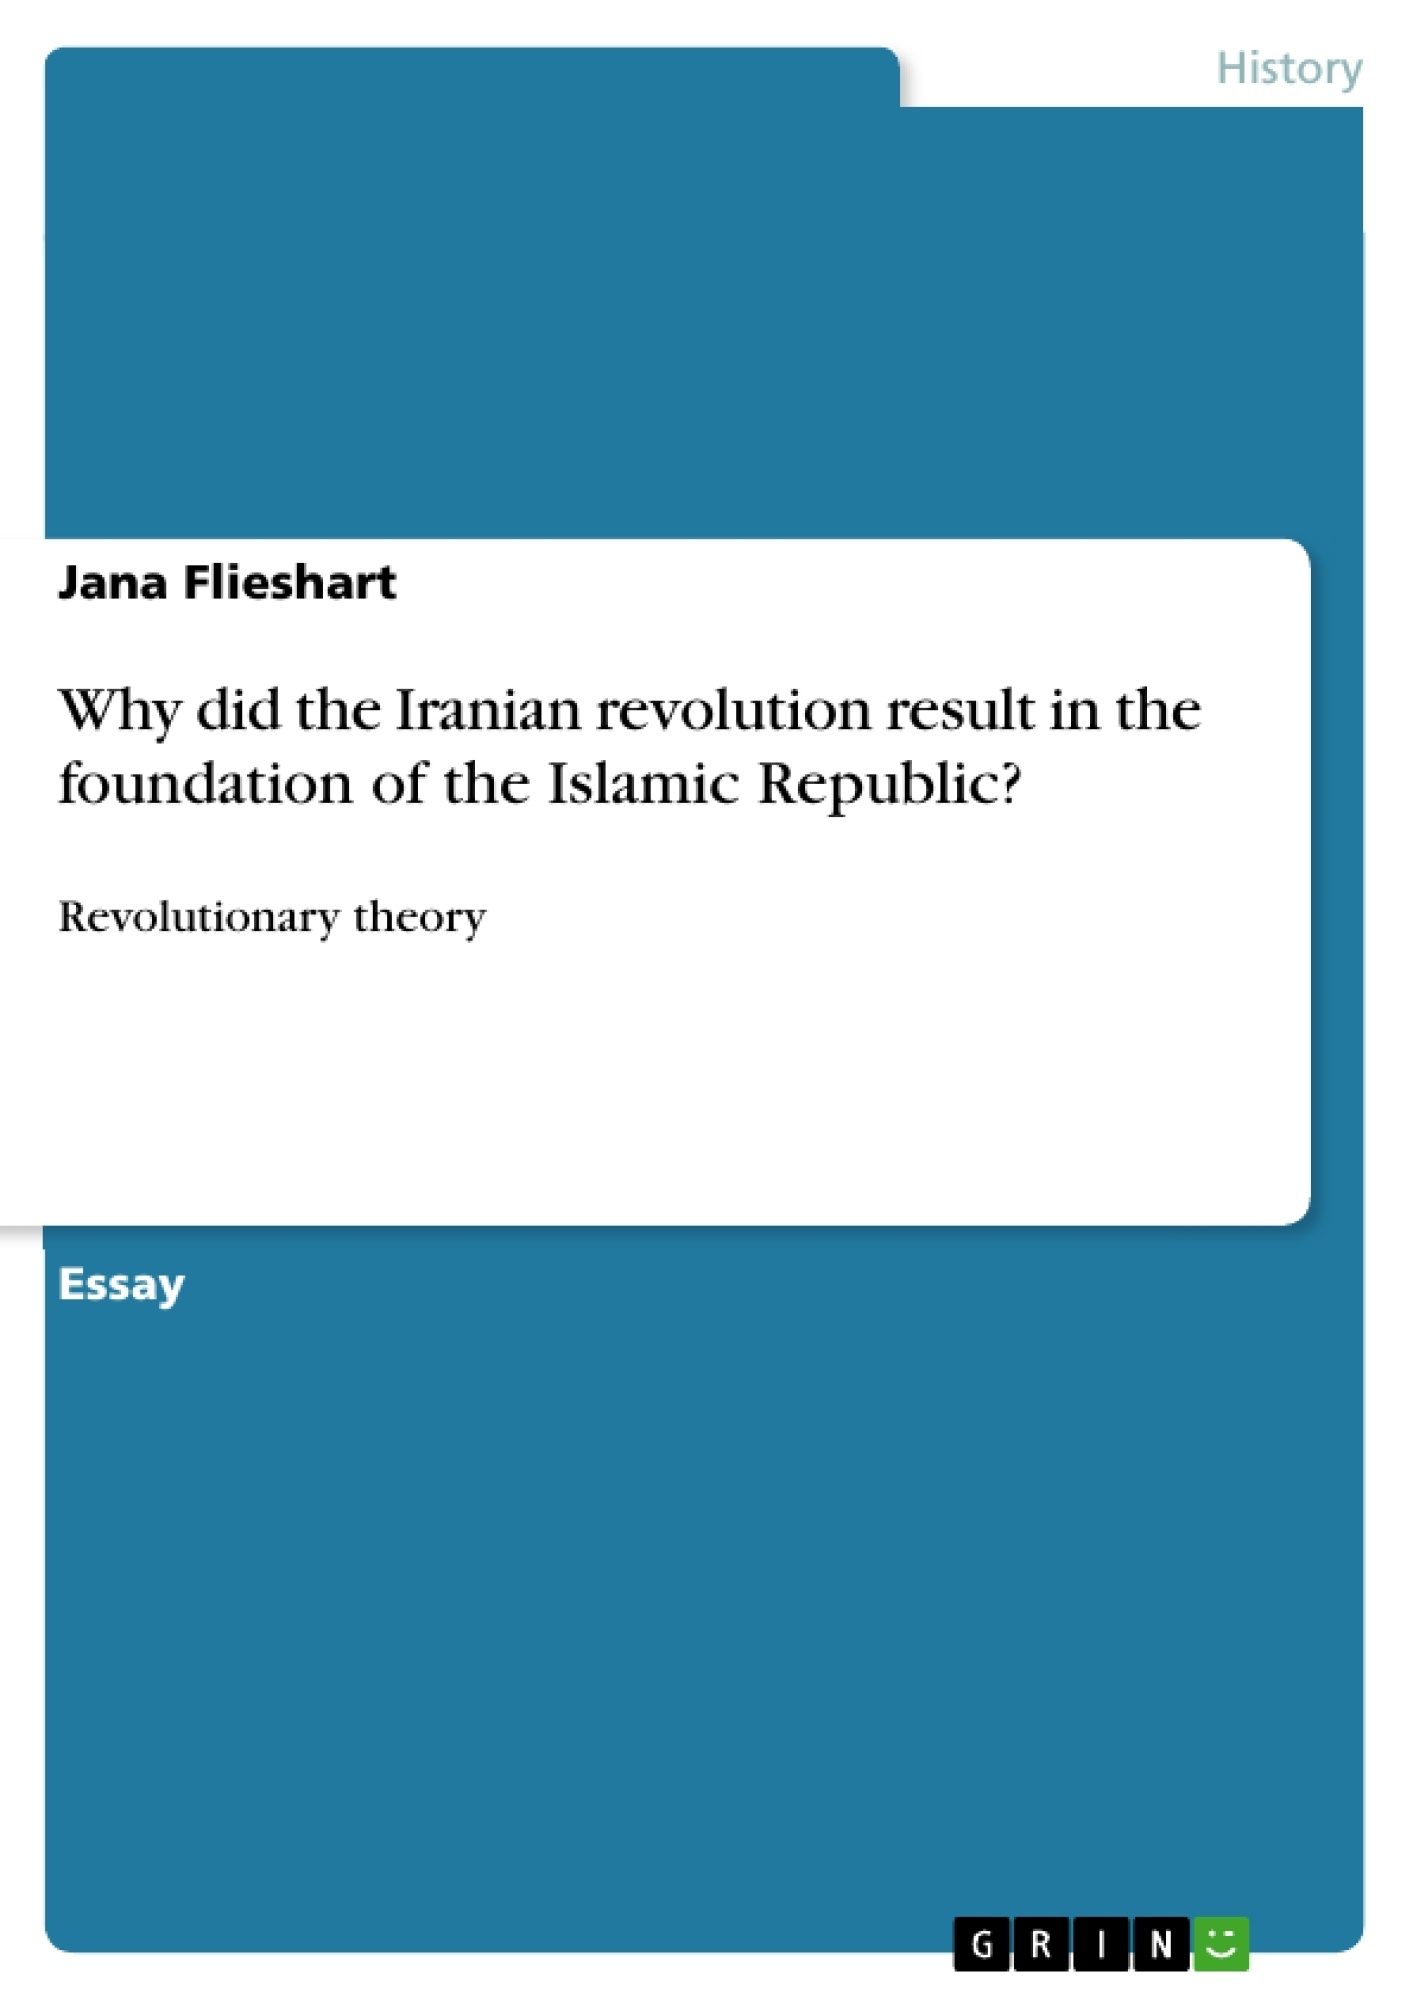 Title: Why did the Iranian revolution result in the foundation of the Islamic Republic?